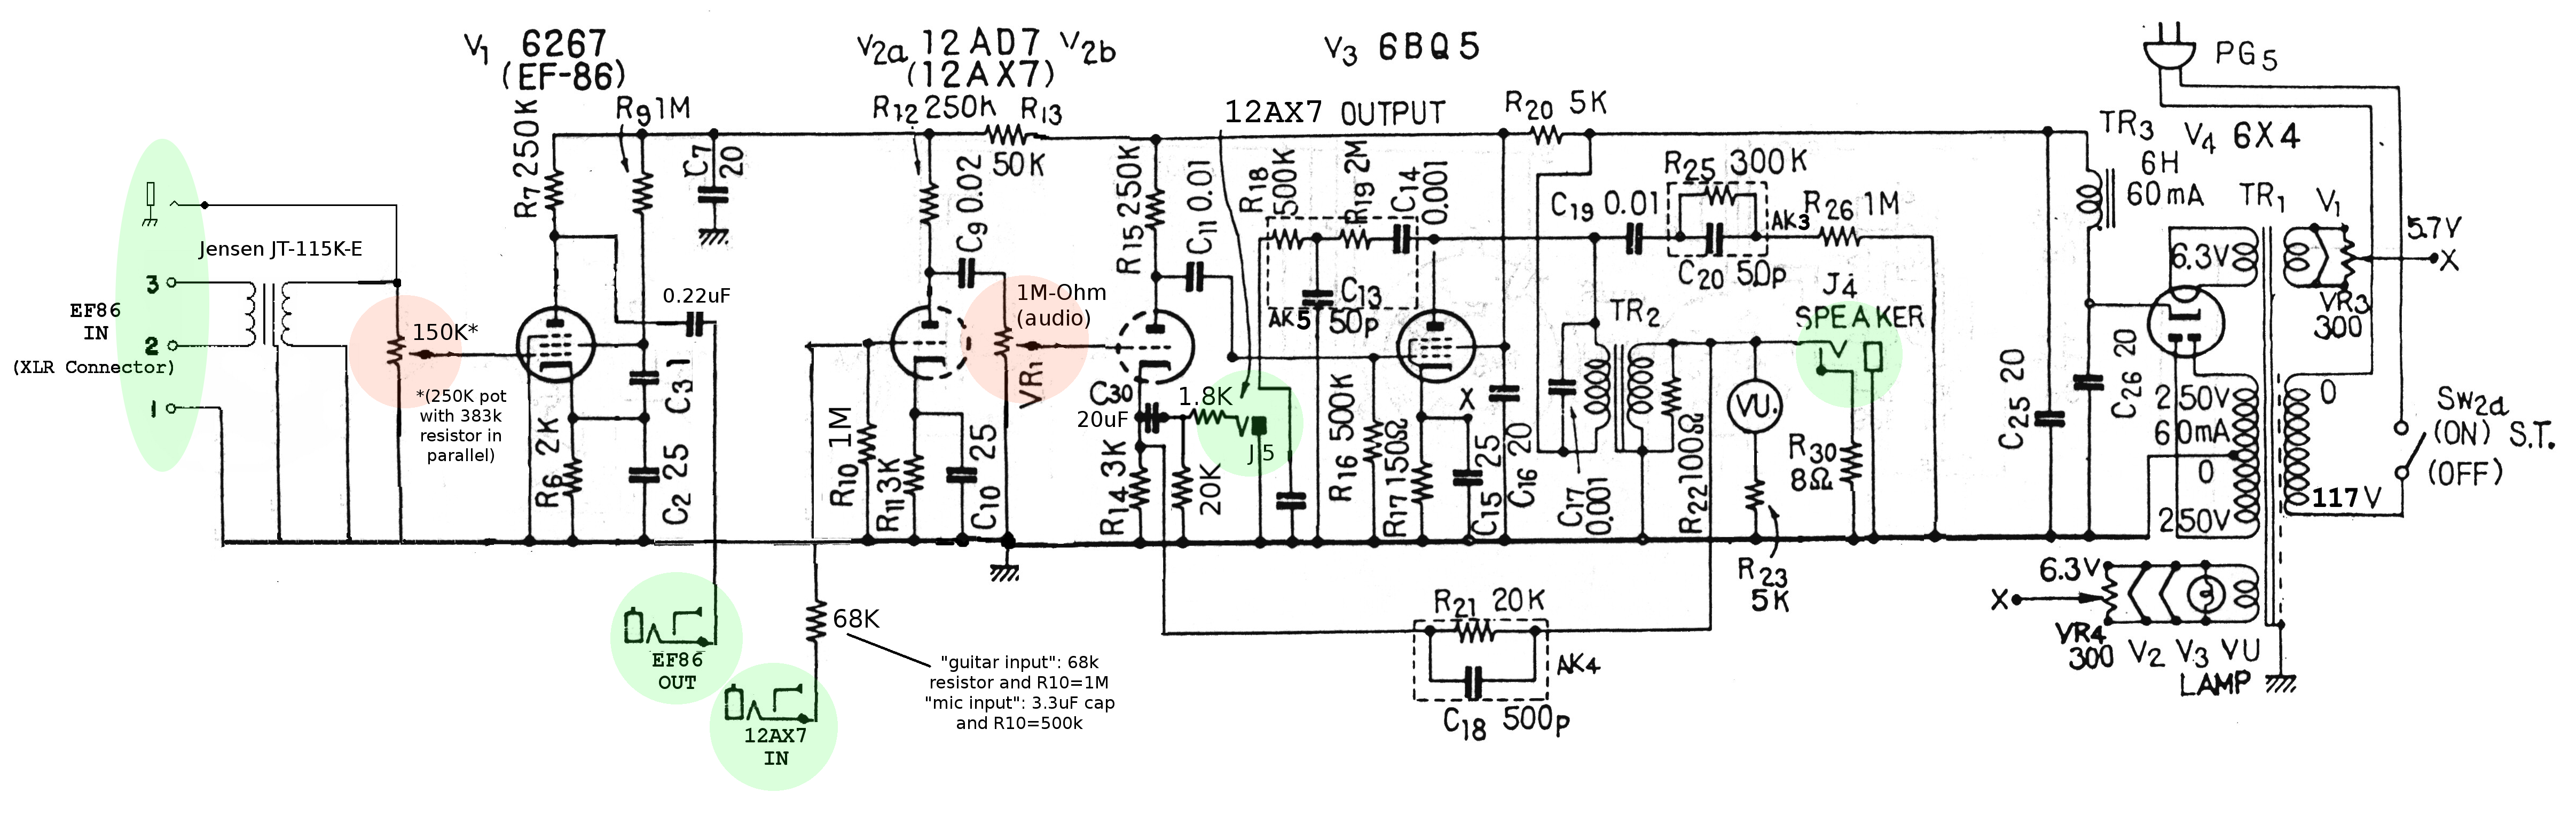 Second Order 2 Way Crossover Schematic Trusted Wiring Diagram Speaker Akai Search For Diagrams U2022 Circuit